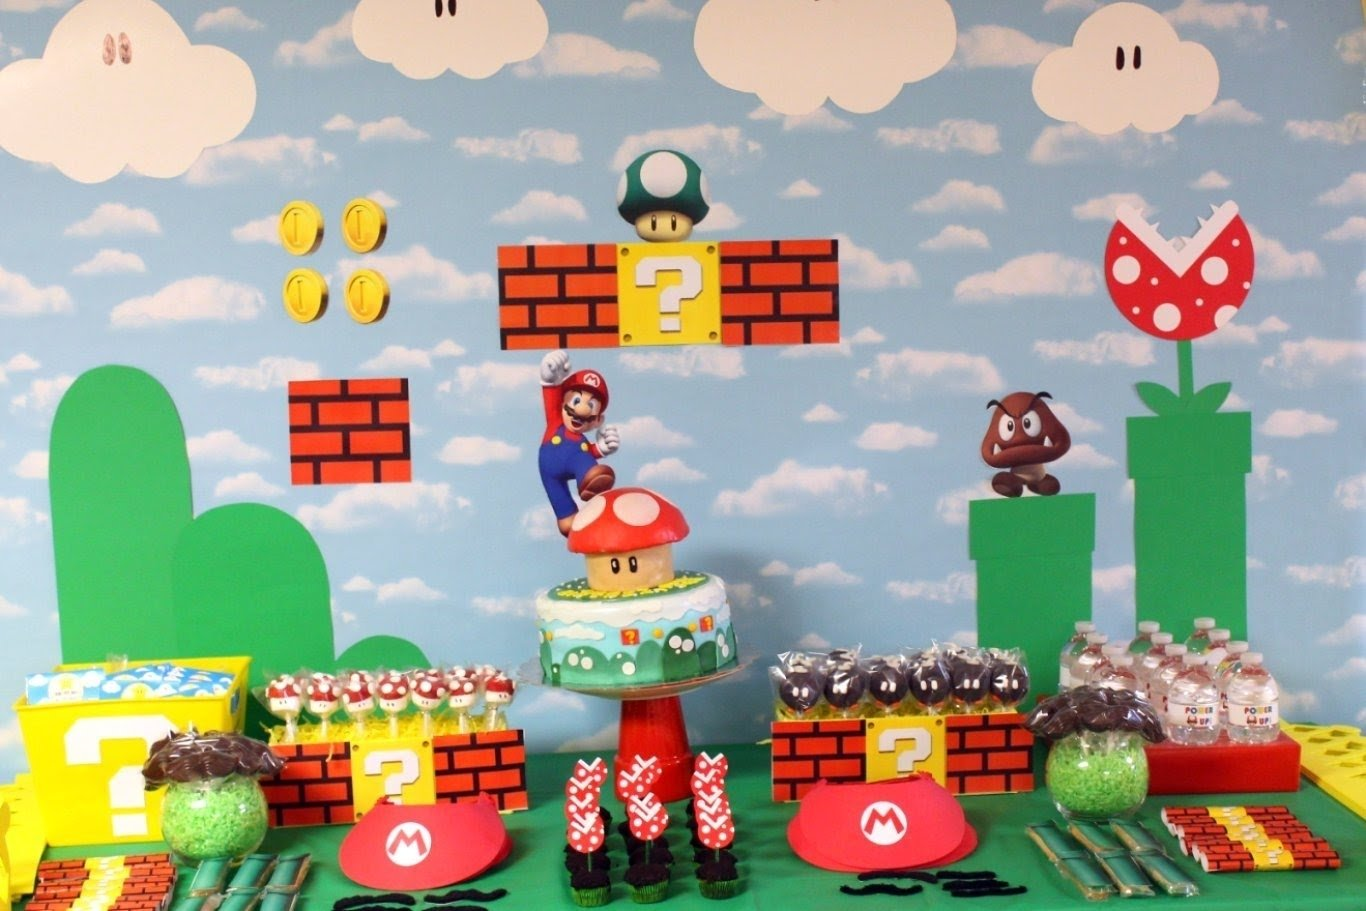 10 Fabulous Super Mario Brothers Birthday Party Ideas mario birthday party decorations and walk through abes world 2020